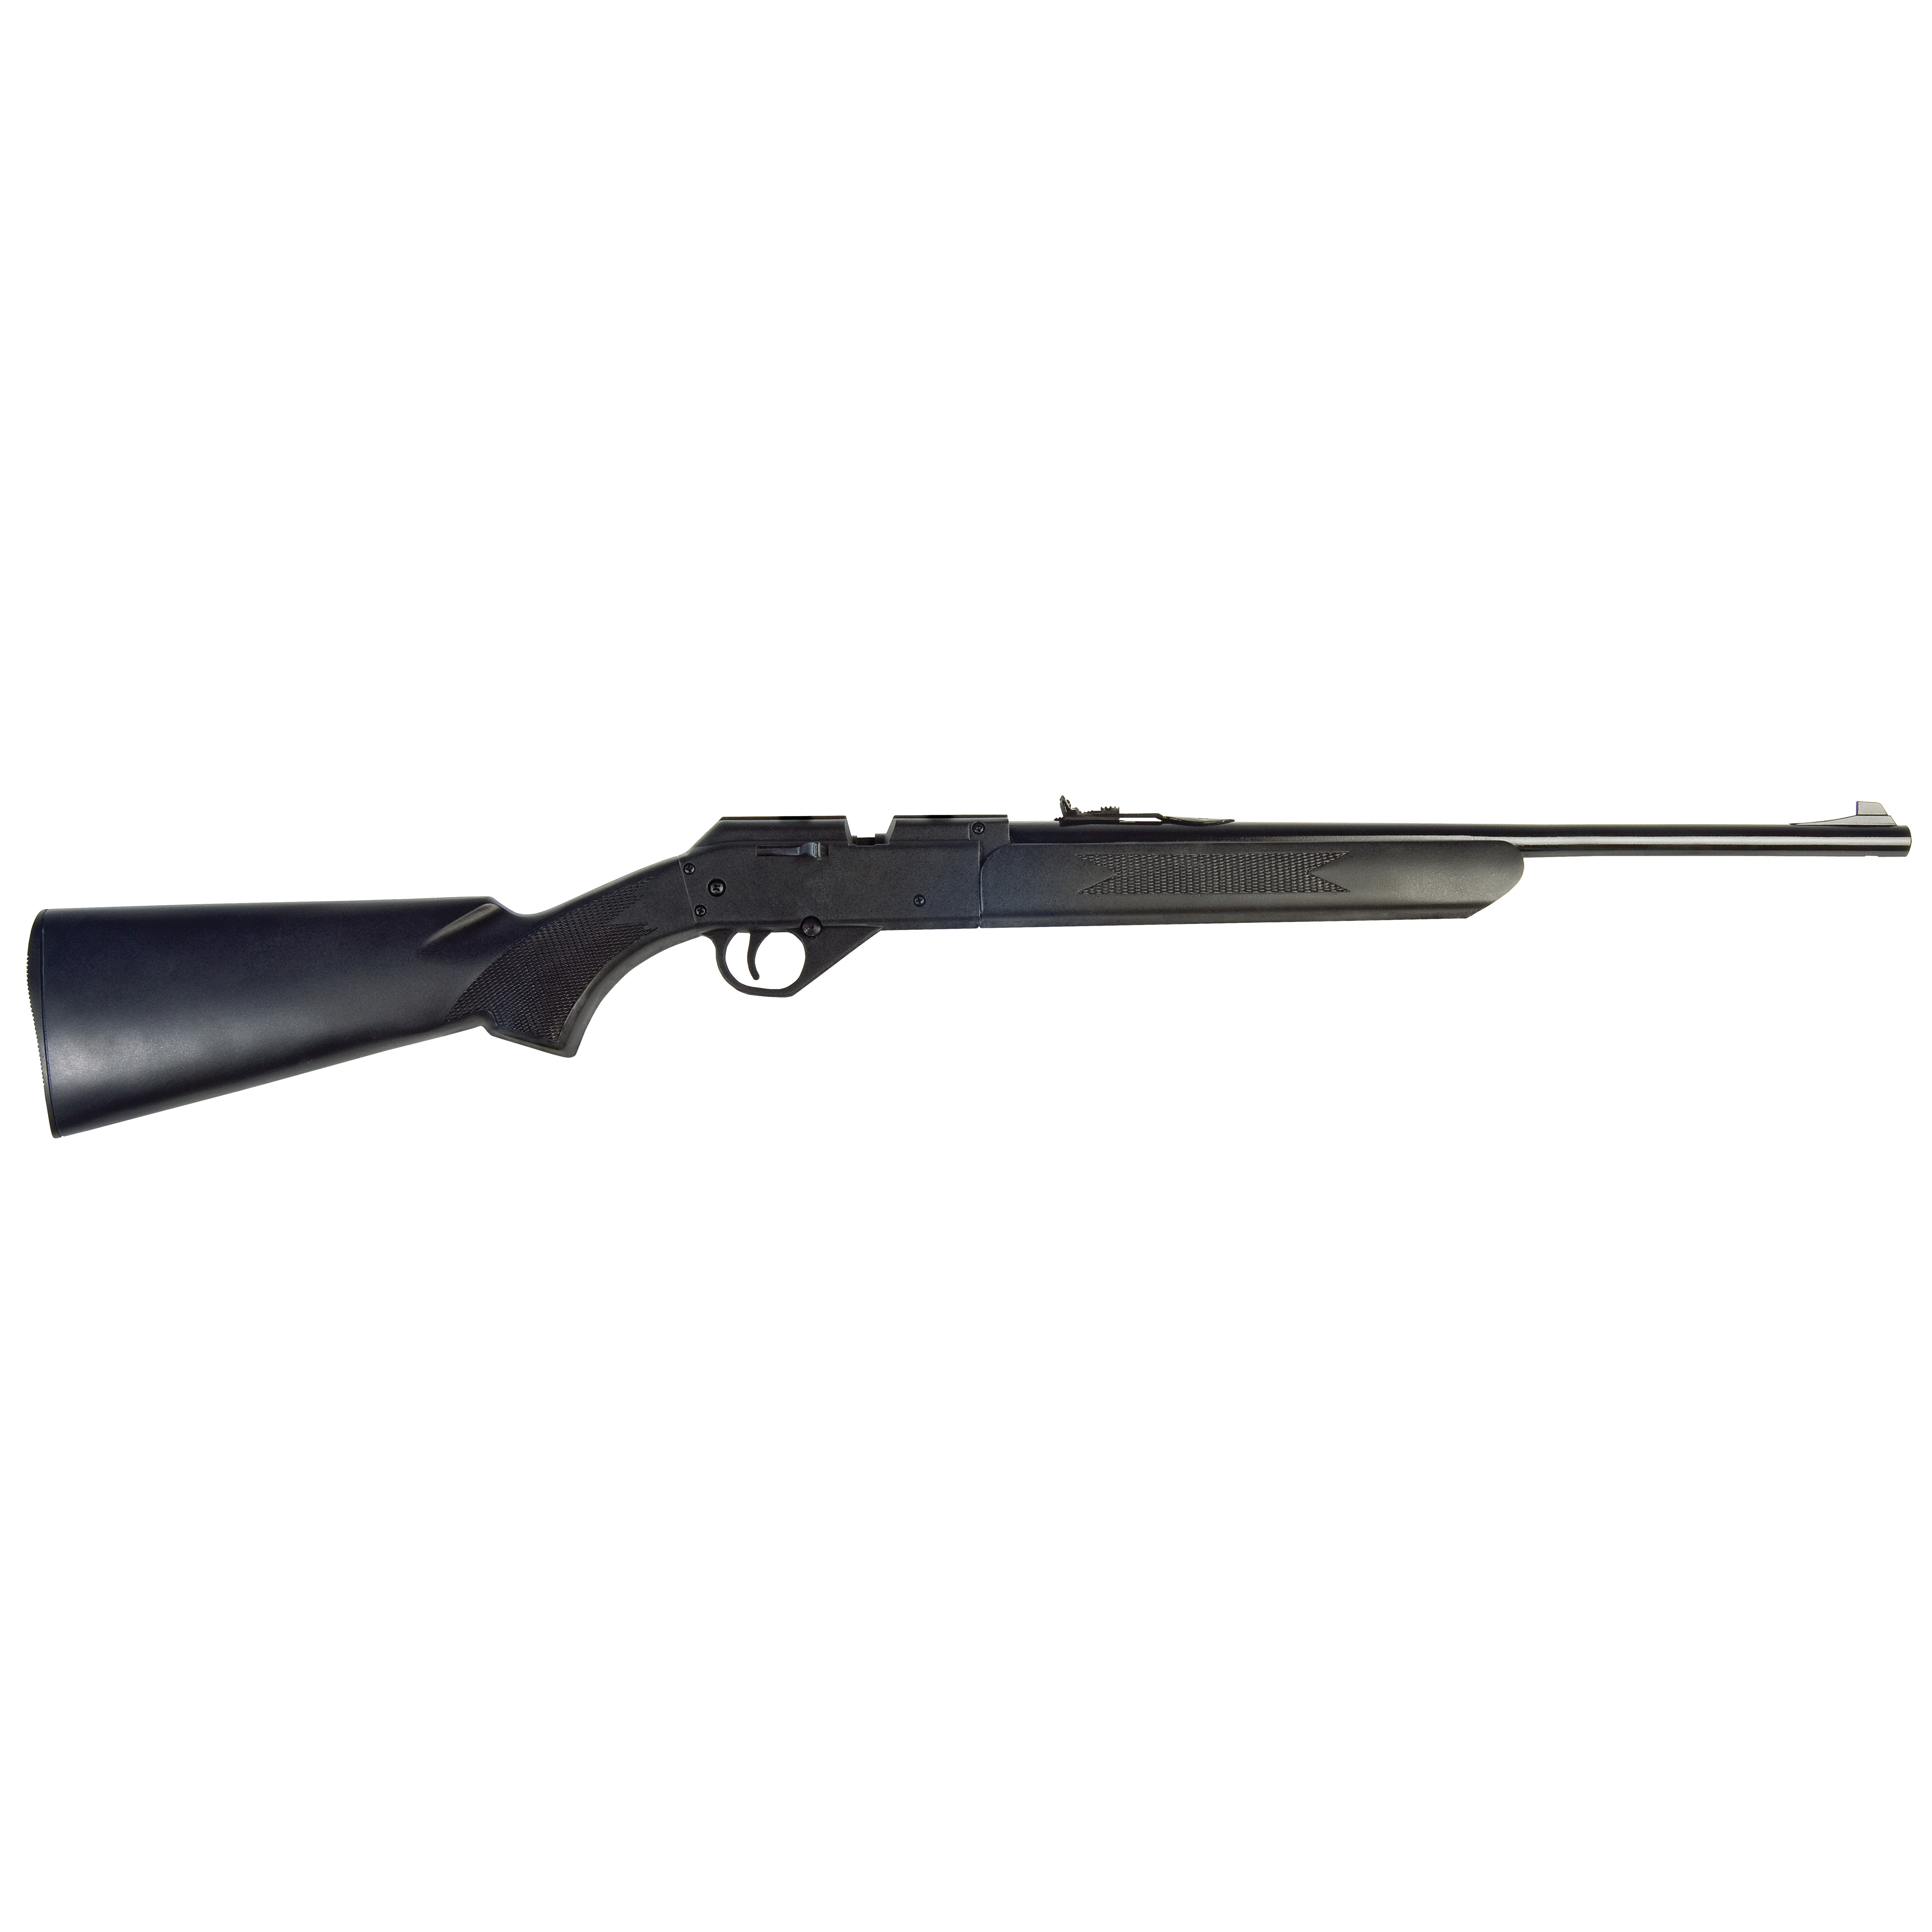 Daisy Model 35 Dual-Ammo Air Rifle